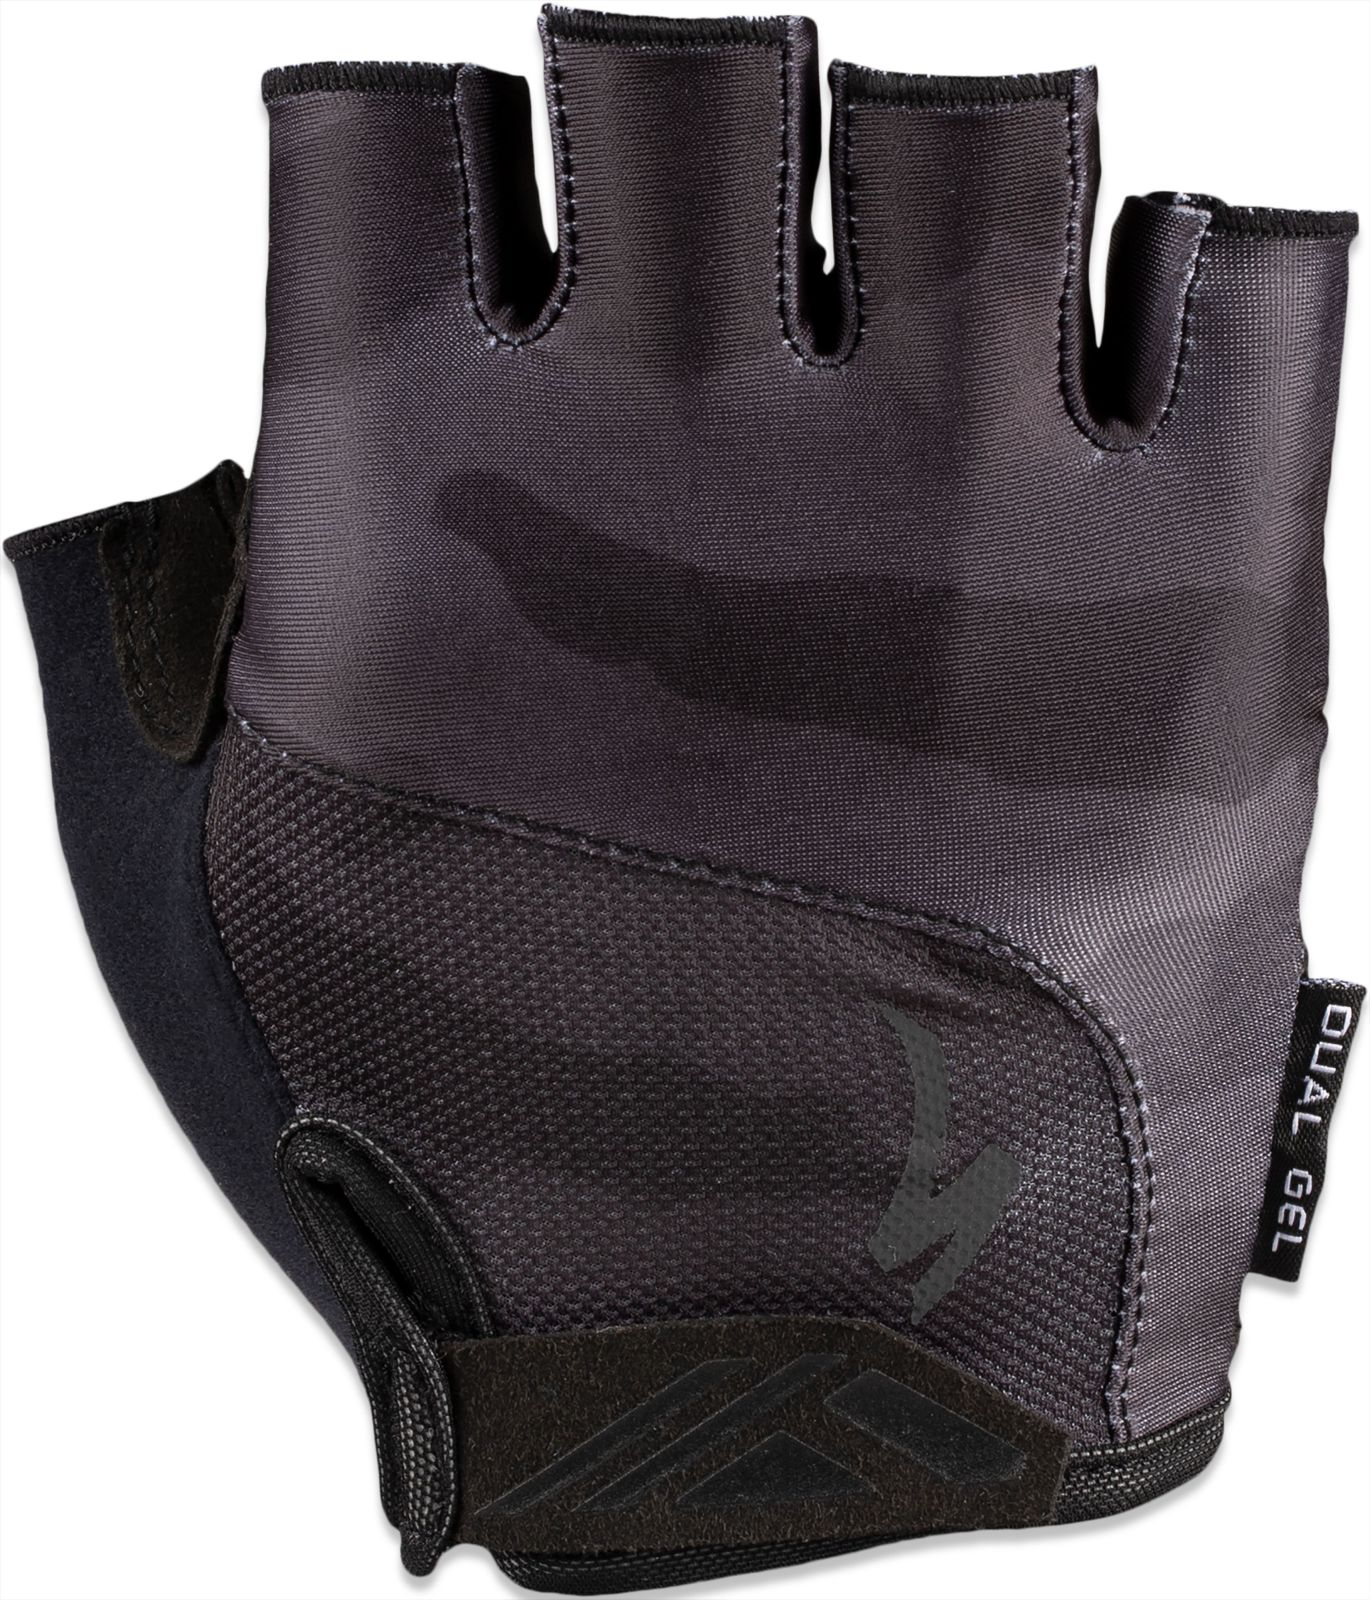 Specialized BG Dual Gel Glove SF - black/charcoal camo S